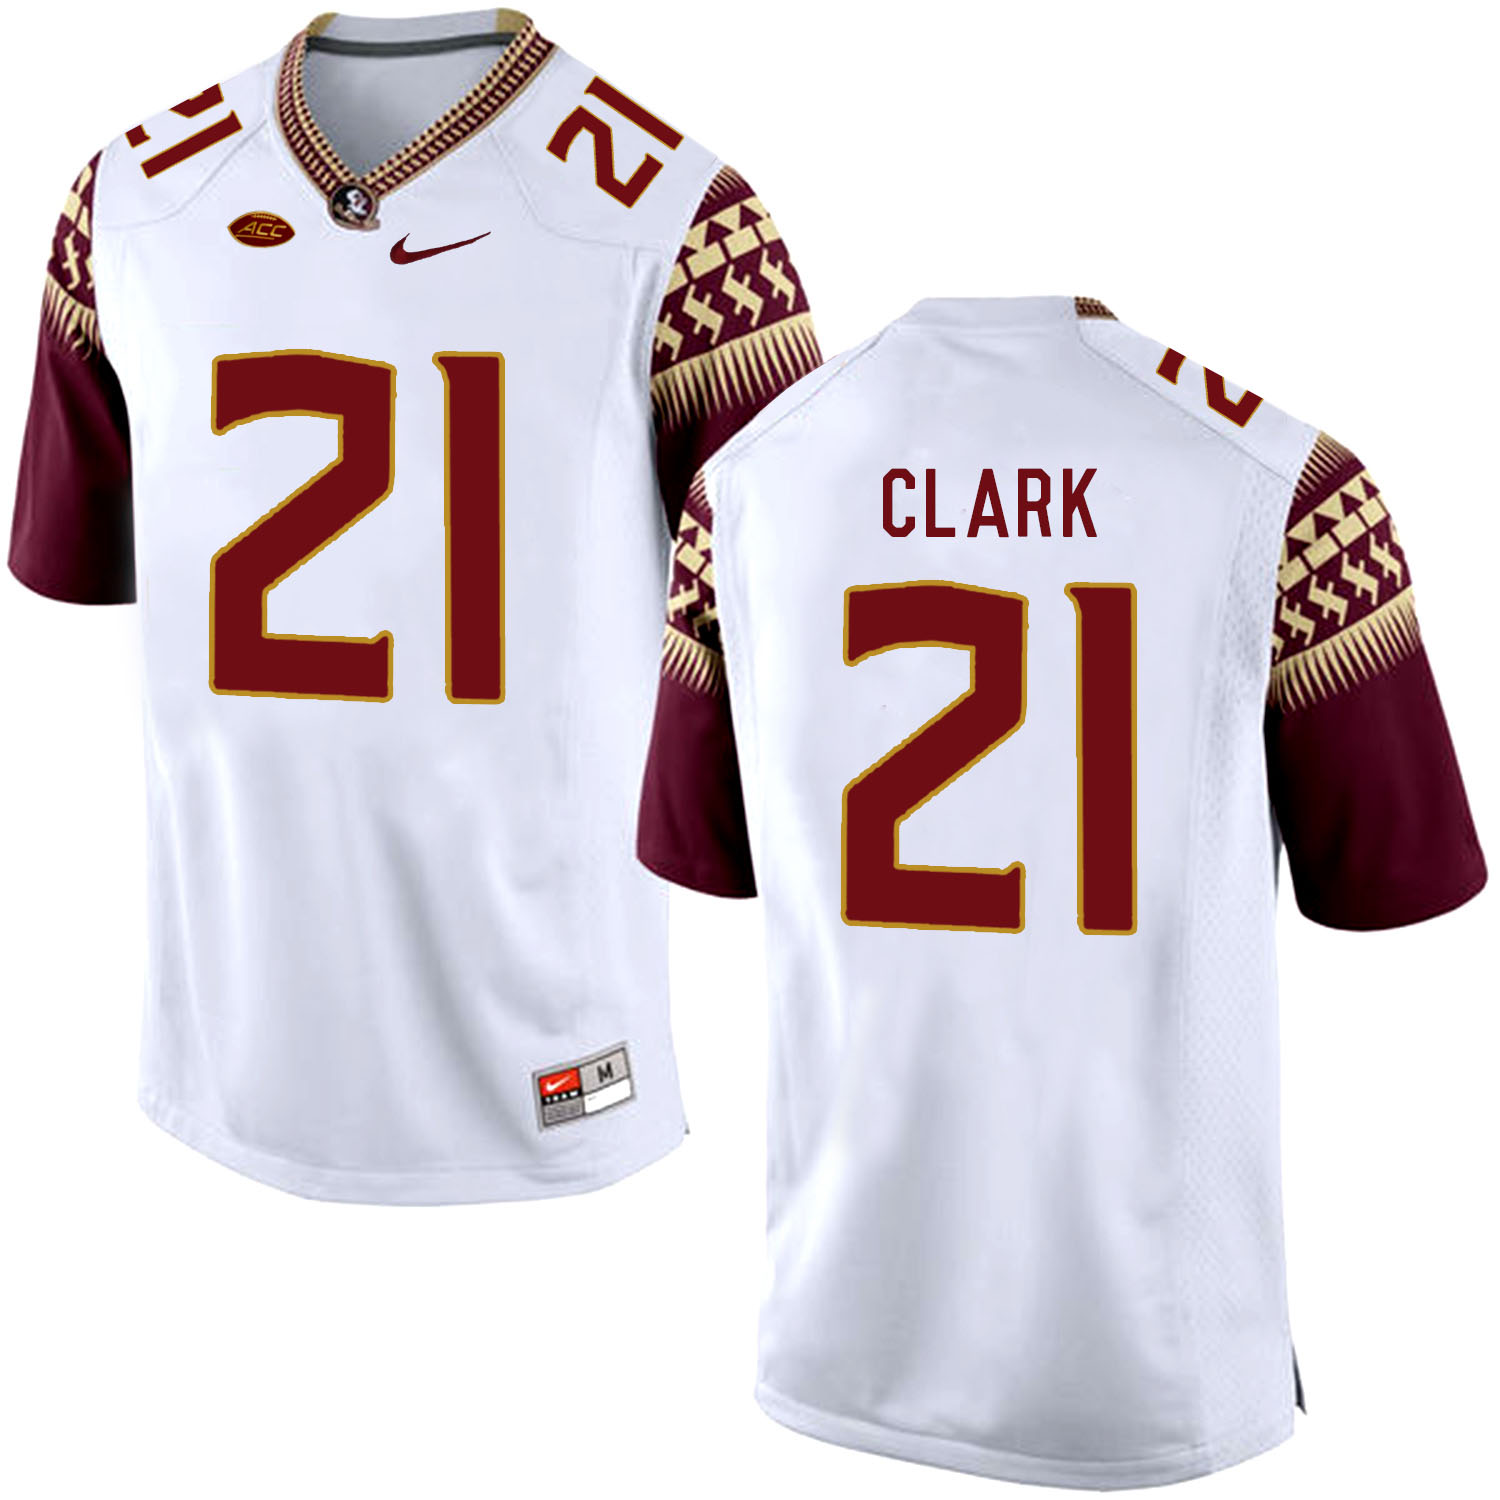 Florida State Seminoles 21 Corey Clark White College Football Jersey